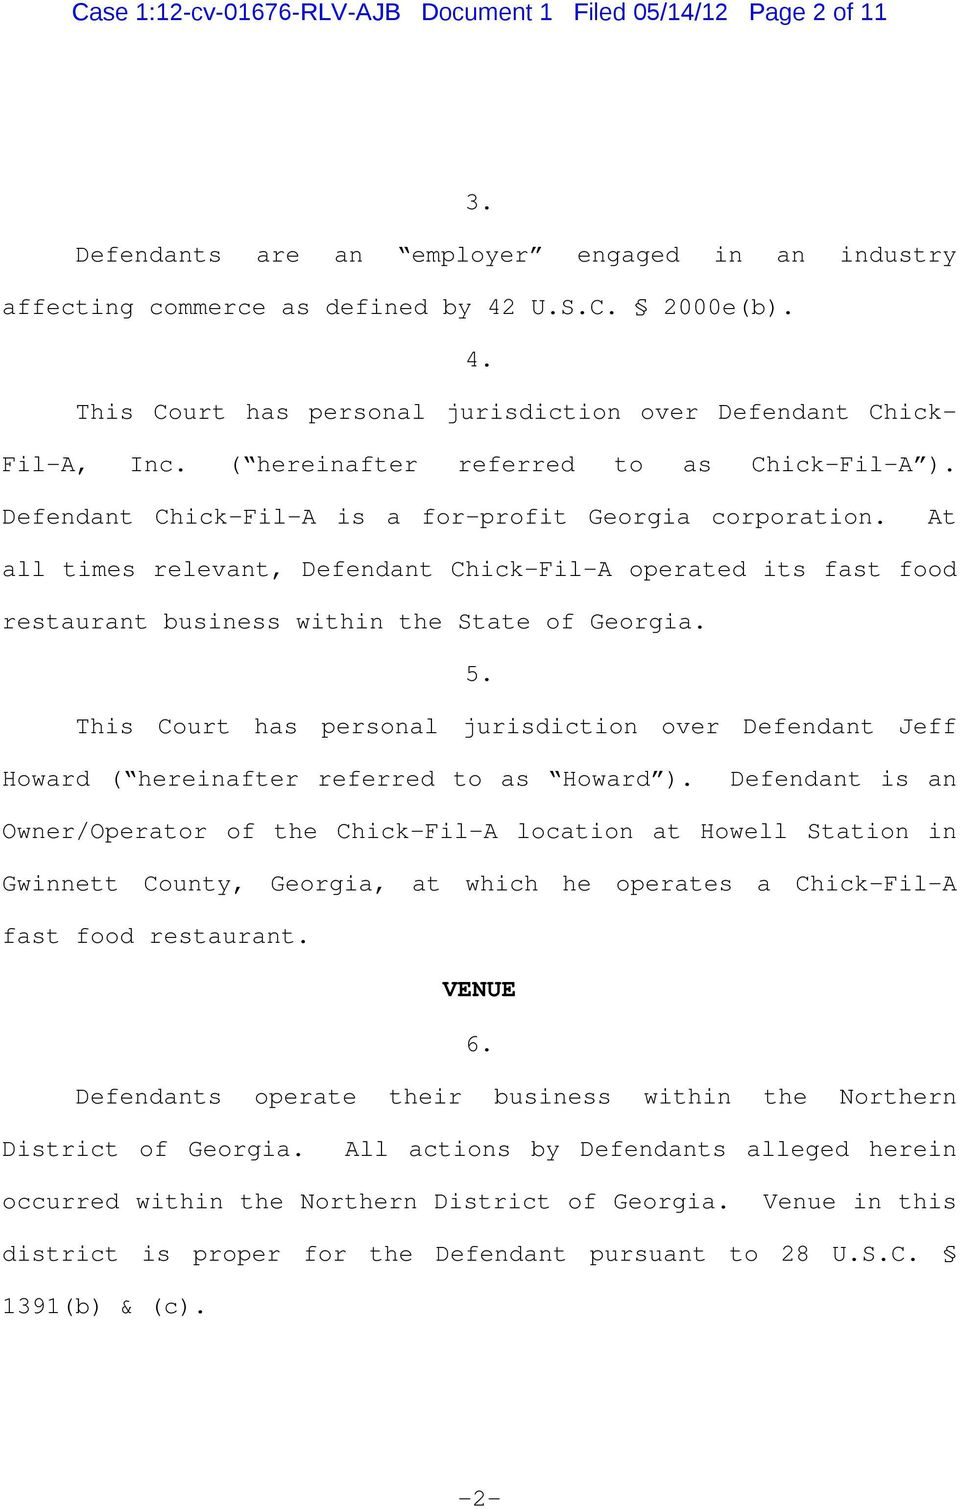 At all times relevant, Defendant Chick-Fil-A operated its fast food restaurant business within the State of Georgia. 5.